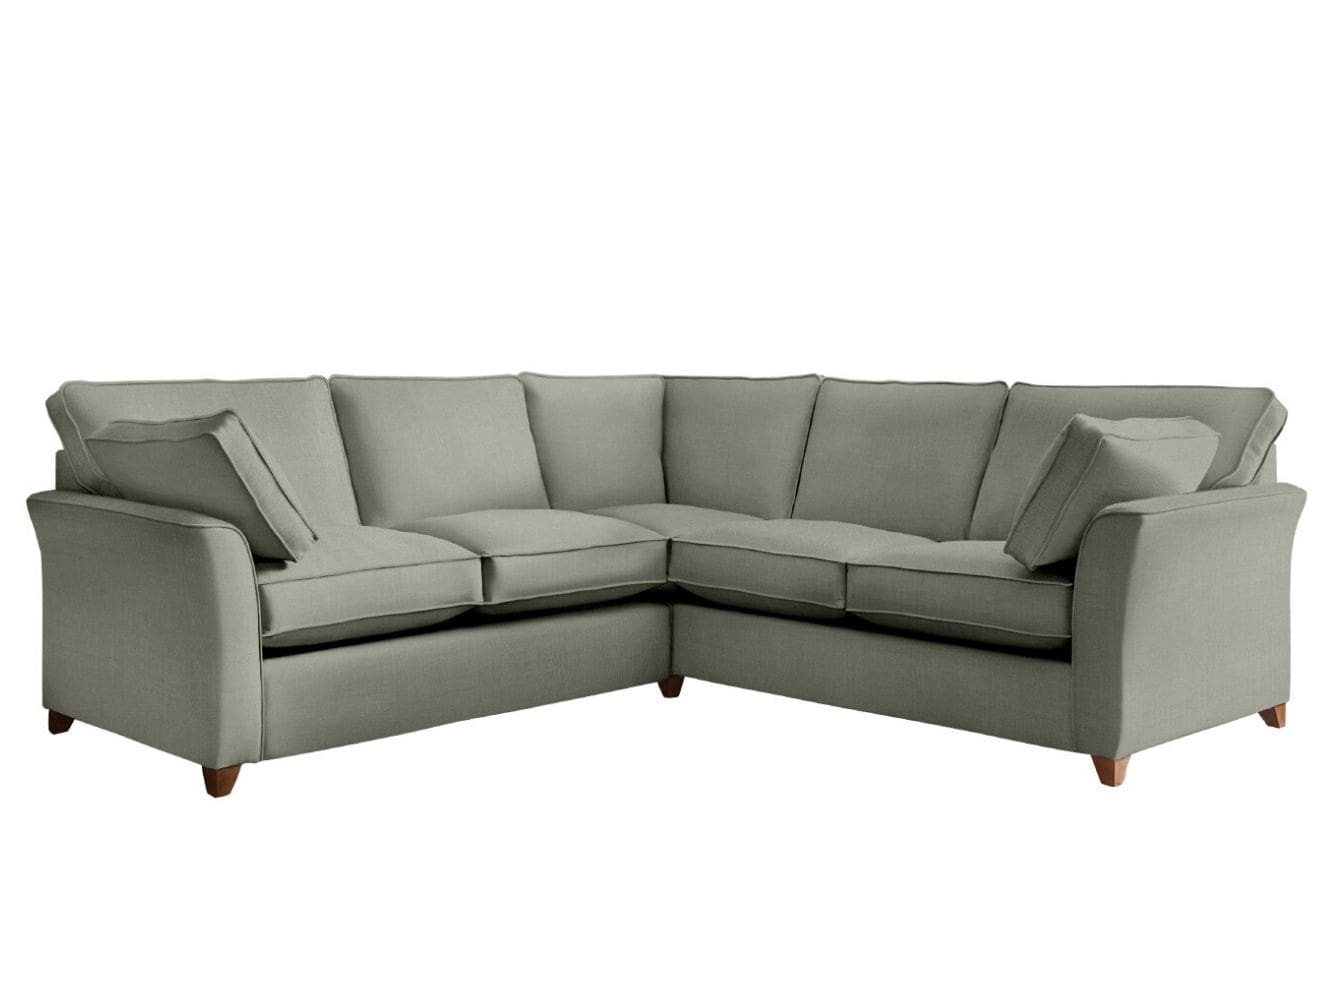 This is how I look in Stain Resistant Linen Cotton Pewter with feather-wrapped foam seat cushions